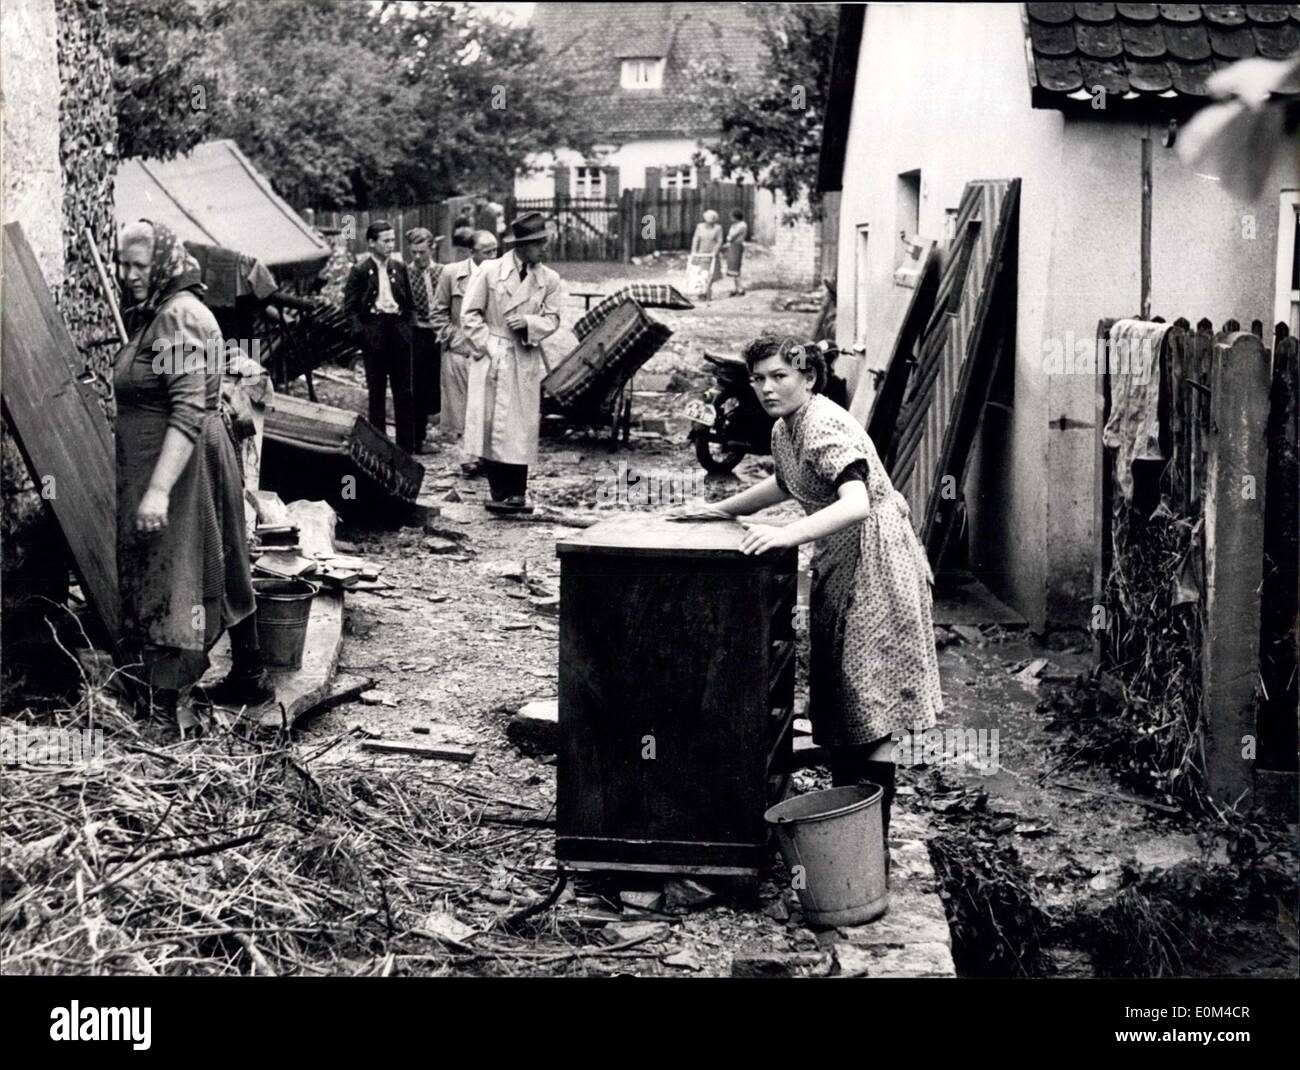 Jun. 15, 1953 - Floods in Lower Bavaria, - Greding afflicted by storms and cloud-bursts. - Fifty families lost home and property. During the weekend, the village of Greding, near Nuremberg Southern Germany, was afflicted by heavy storms and cloud-bursts. the Muehl-rill, in summer usually a dead watercourse, all over a sudden turned to a 200 meters wide raging river and carried away stables, sheds, household-furniture ad thousands of hundred-weights of grain - Stock Image